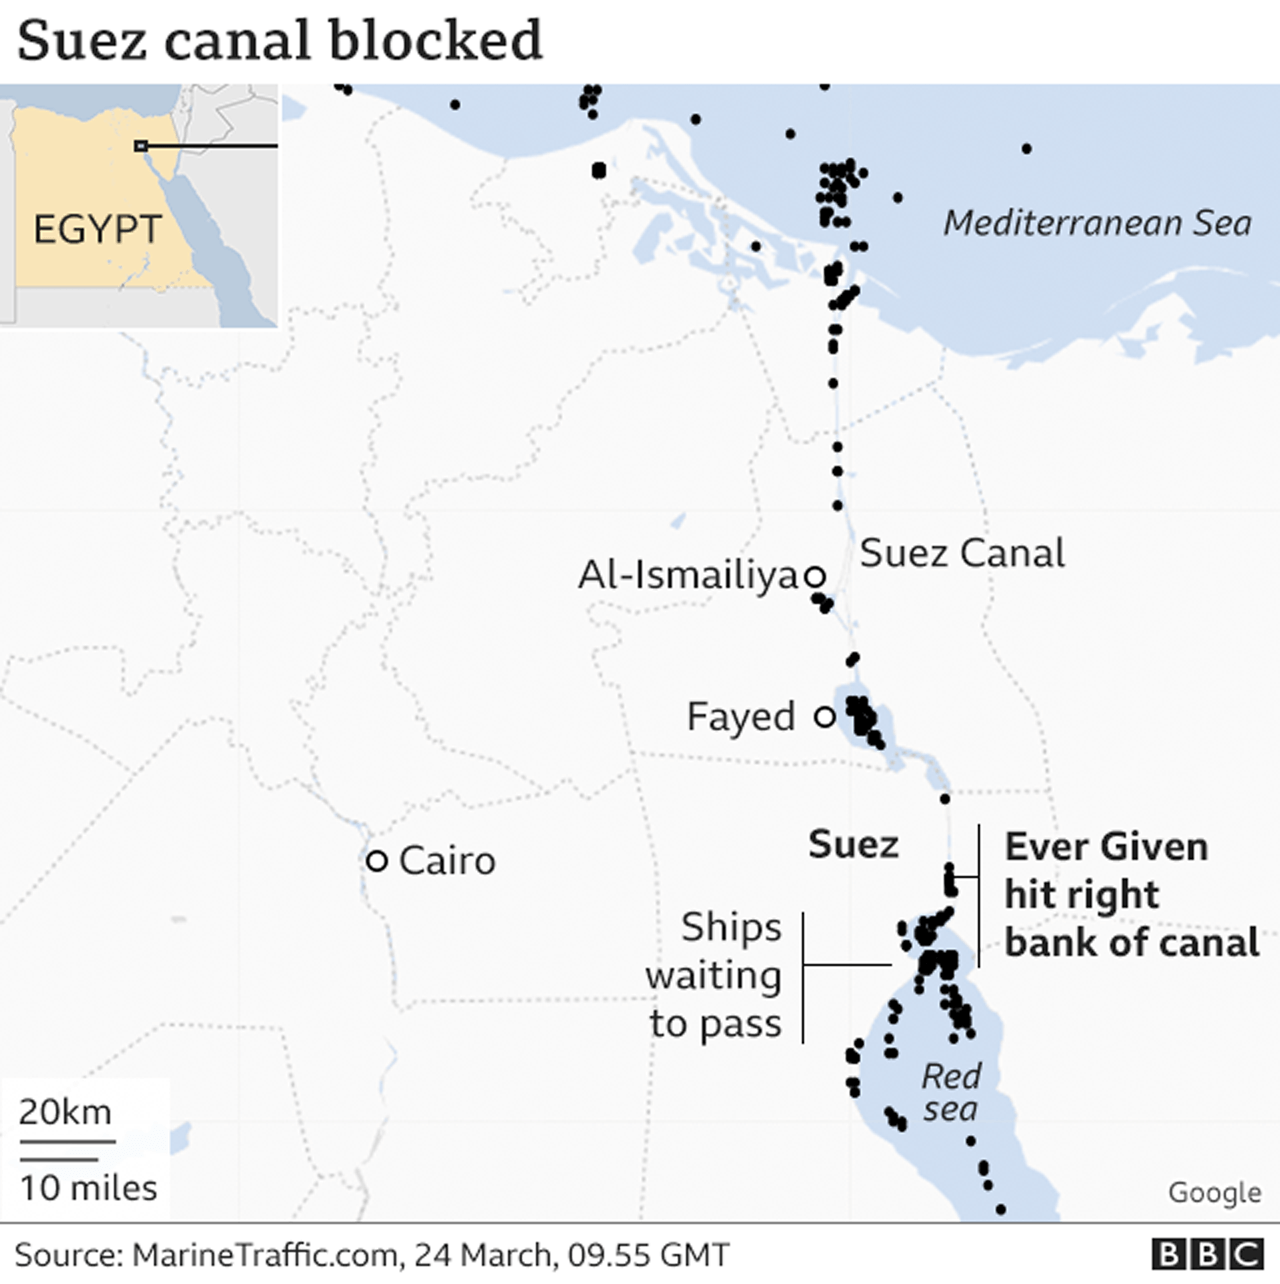 Graphic showing the blockage in the Suez Canal